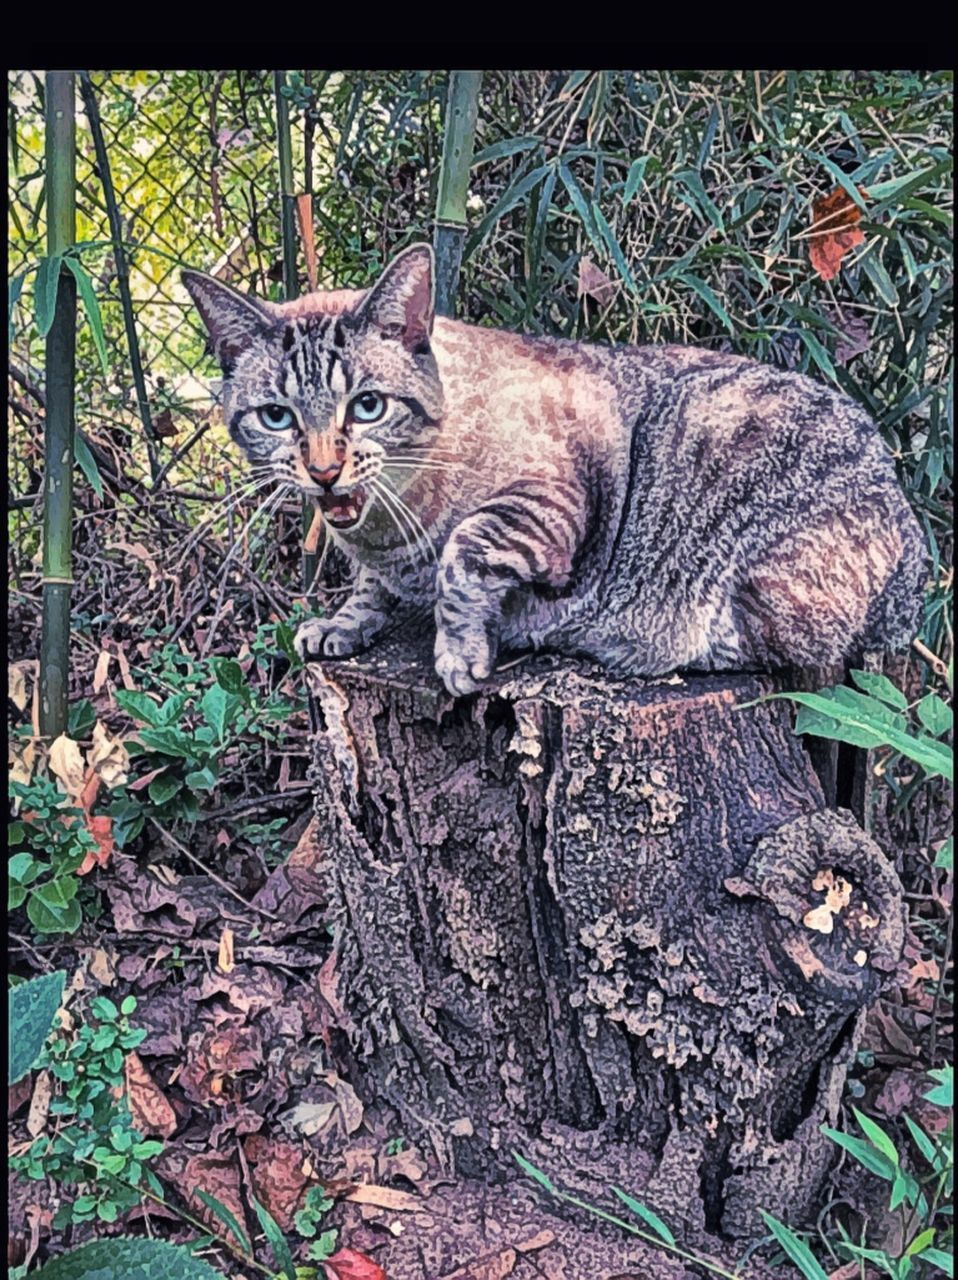 domestic cat, looking at camera, feline, pets, animal themes, domestic animals, portrait, one animal, mammal, no people, outdoors, day, sitting